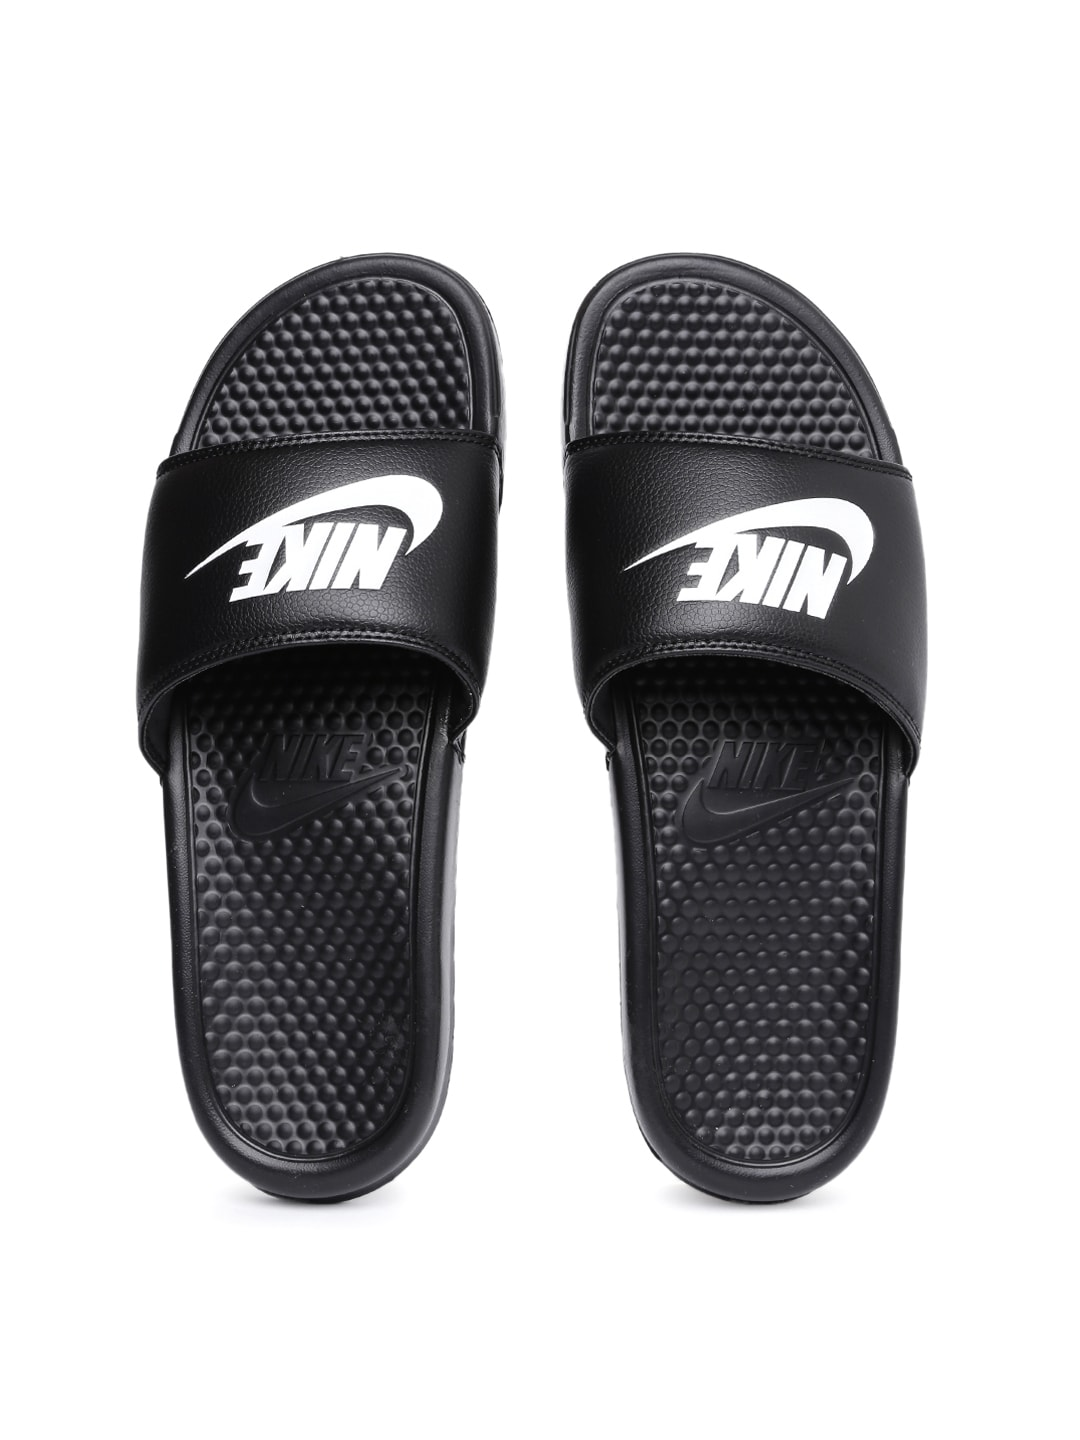 2c96f3be0a00 Nike Flip-Flops - Buy Nike Flip-Flops for Men Women Online